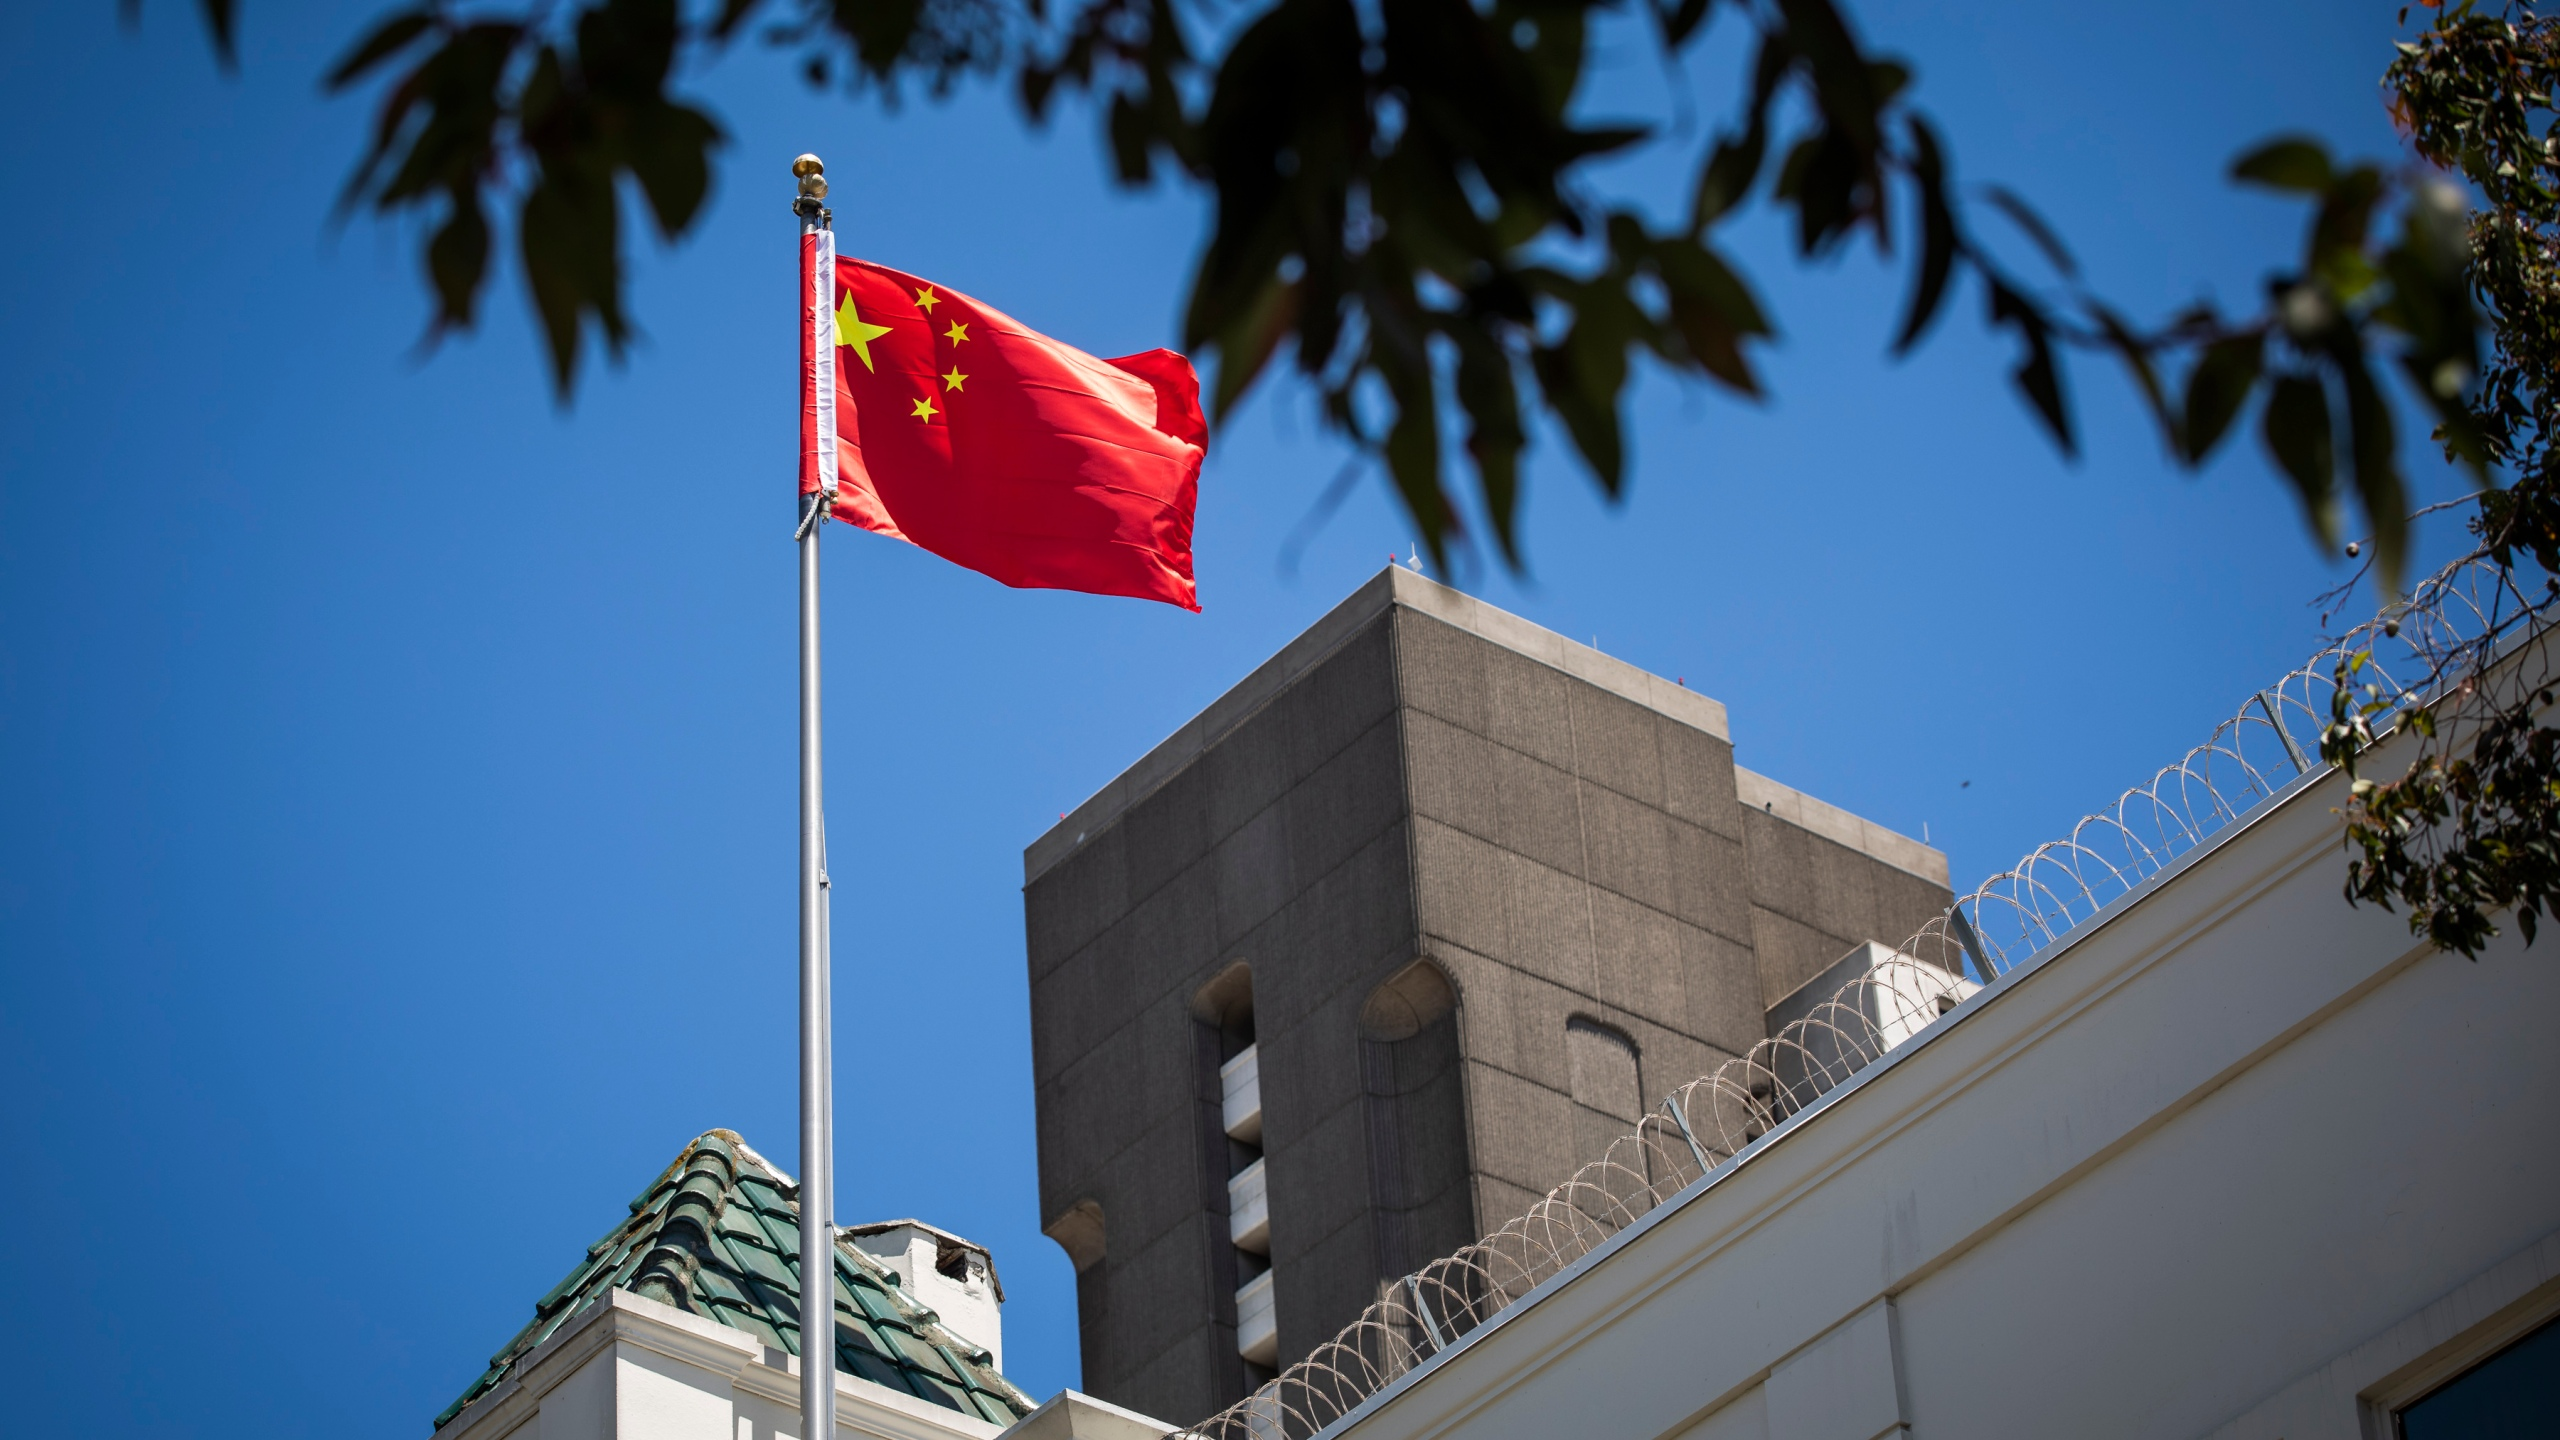 The flag of the People's Republic of China flies in the wind above the Consulate General of the People's Republic of China in San Francisco, on July 23, 2020. The U.S. Justice Department announced on July 23, 2020, the indictments of four Chinese researchers it said lied about their ties to the People's Liberation Army, with one escaping arrest by taking refuge in the country's San Francisco consulate. (Philip Pacheco / AFP via Getty Images)